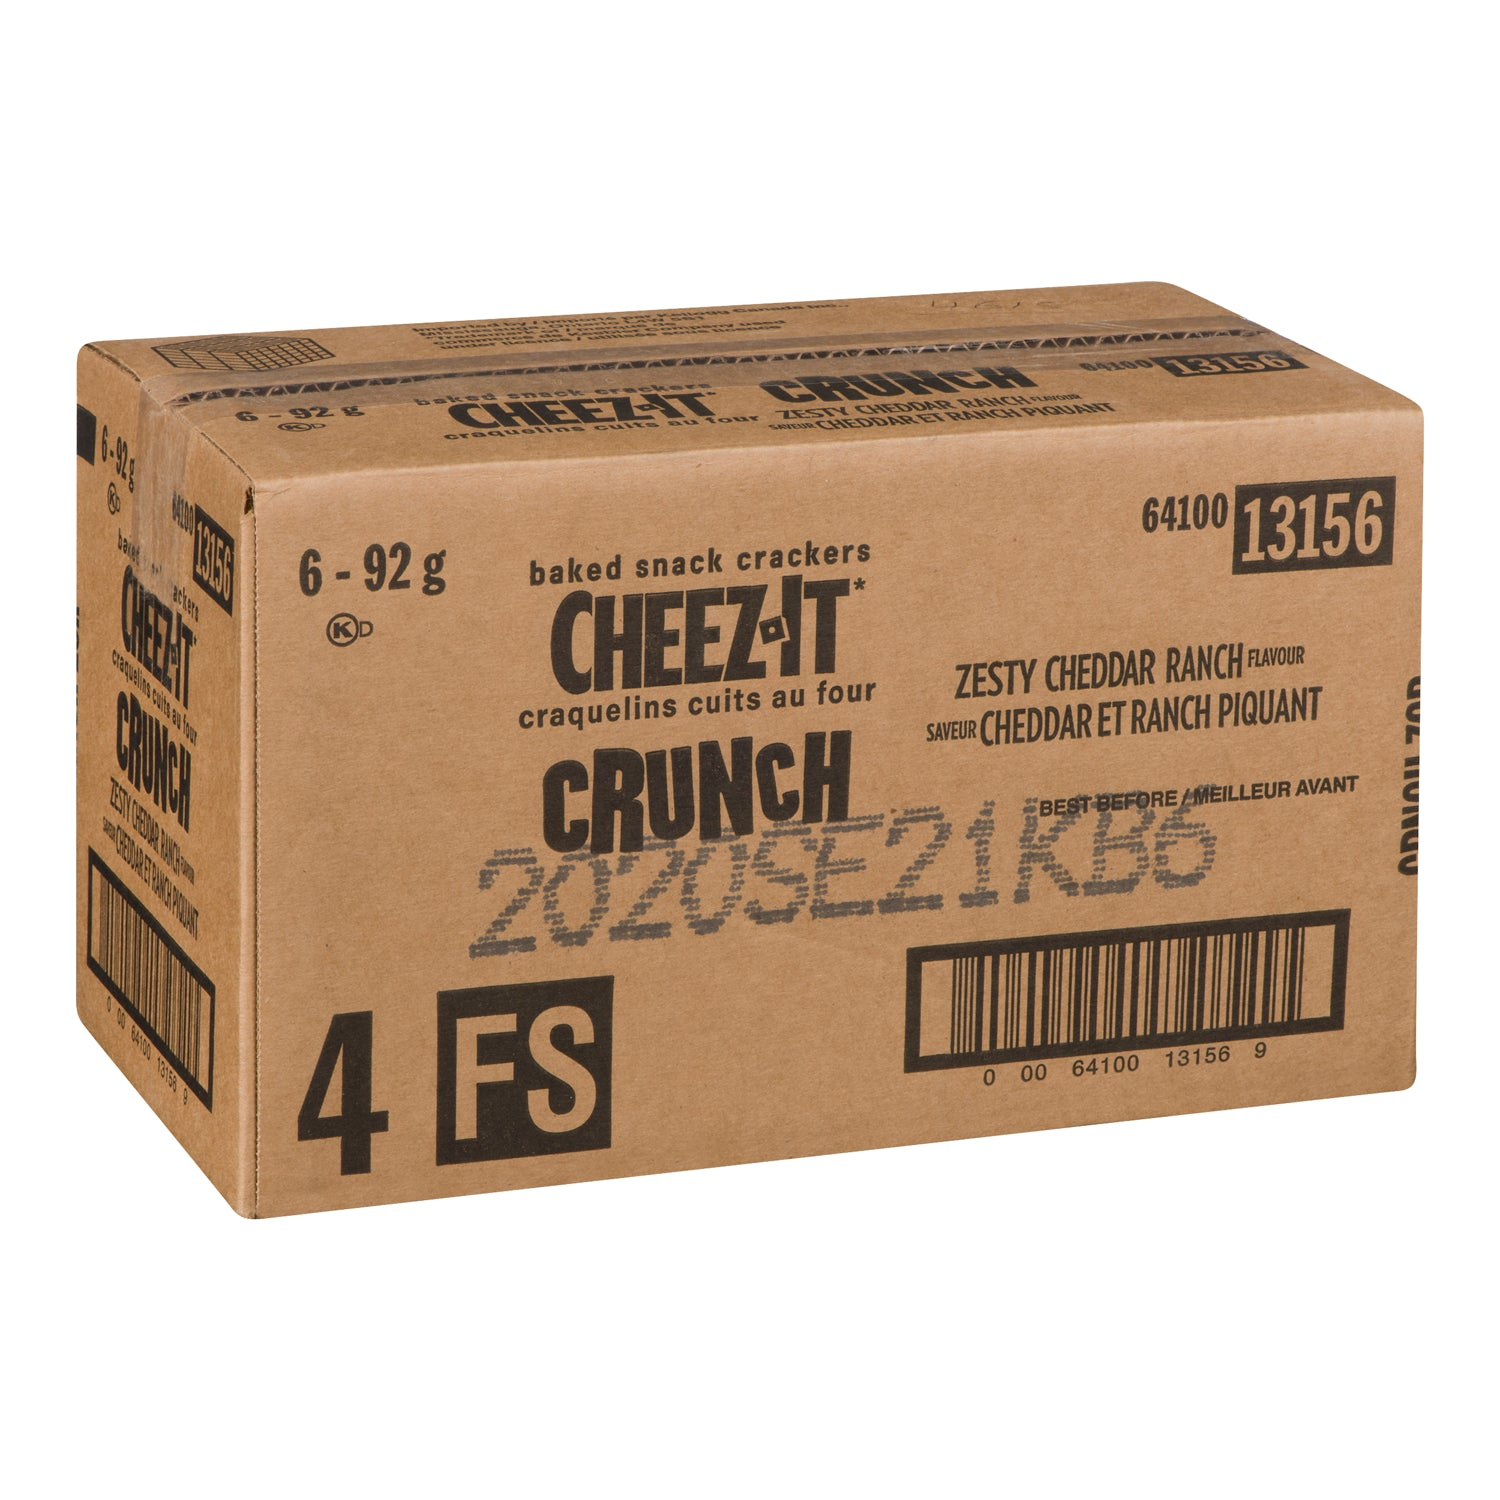 Kellogg's Cheezit Crunchy Cheddar Cracker Ranch Flavour 92 g - 6 Pack [$1.33/each]